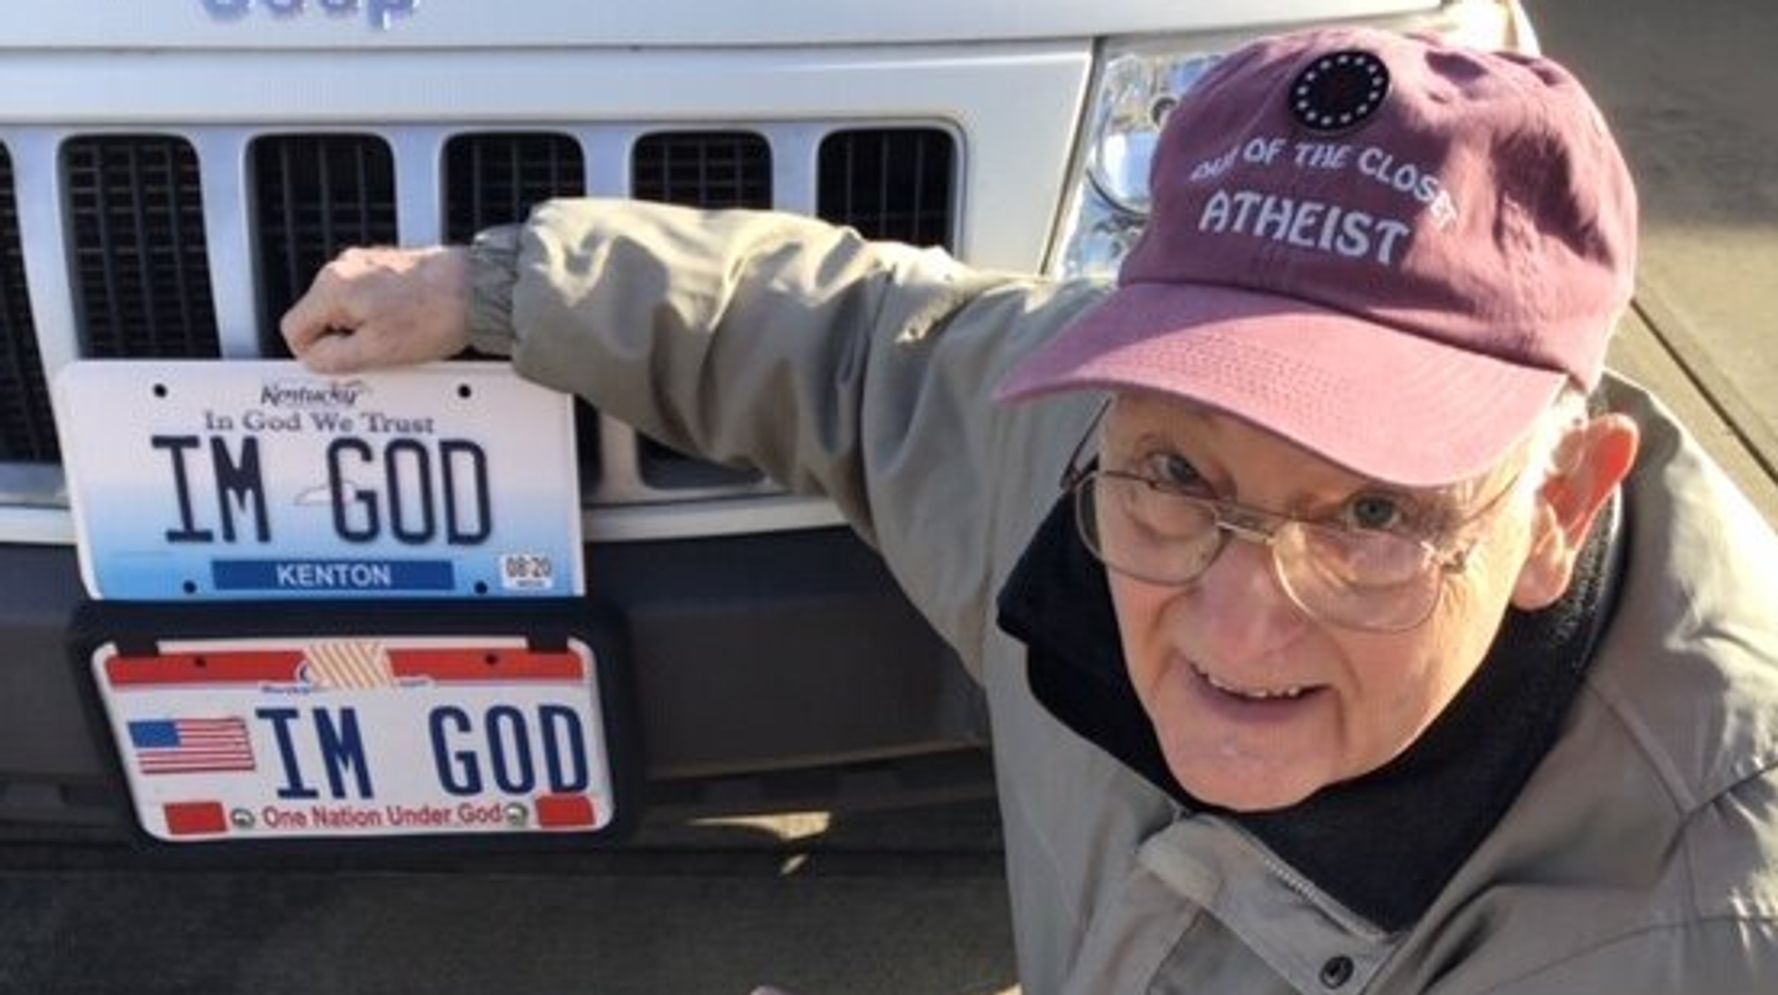 Kentucky Atheist Awarded $150,000 In Fight Over Vanity License Plates